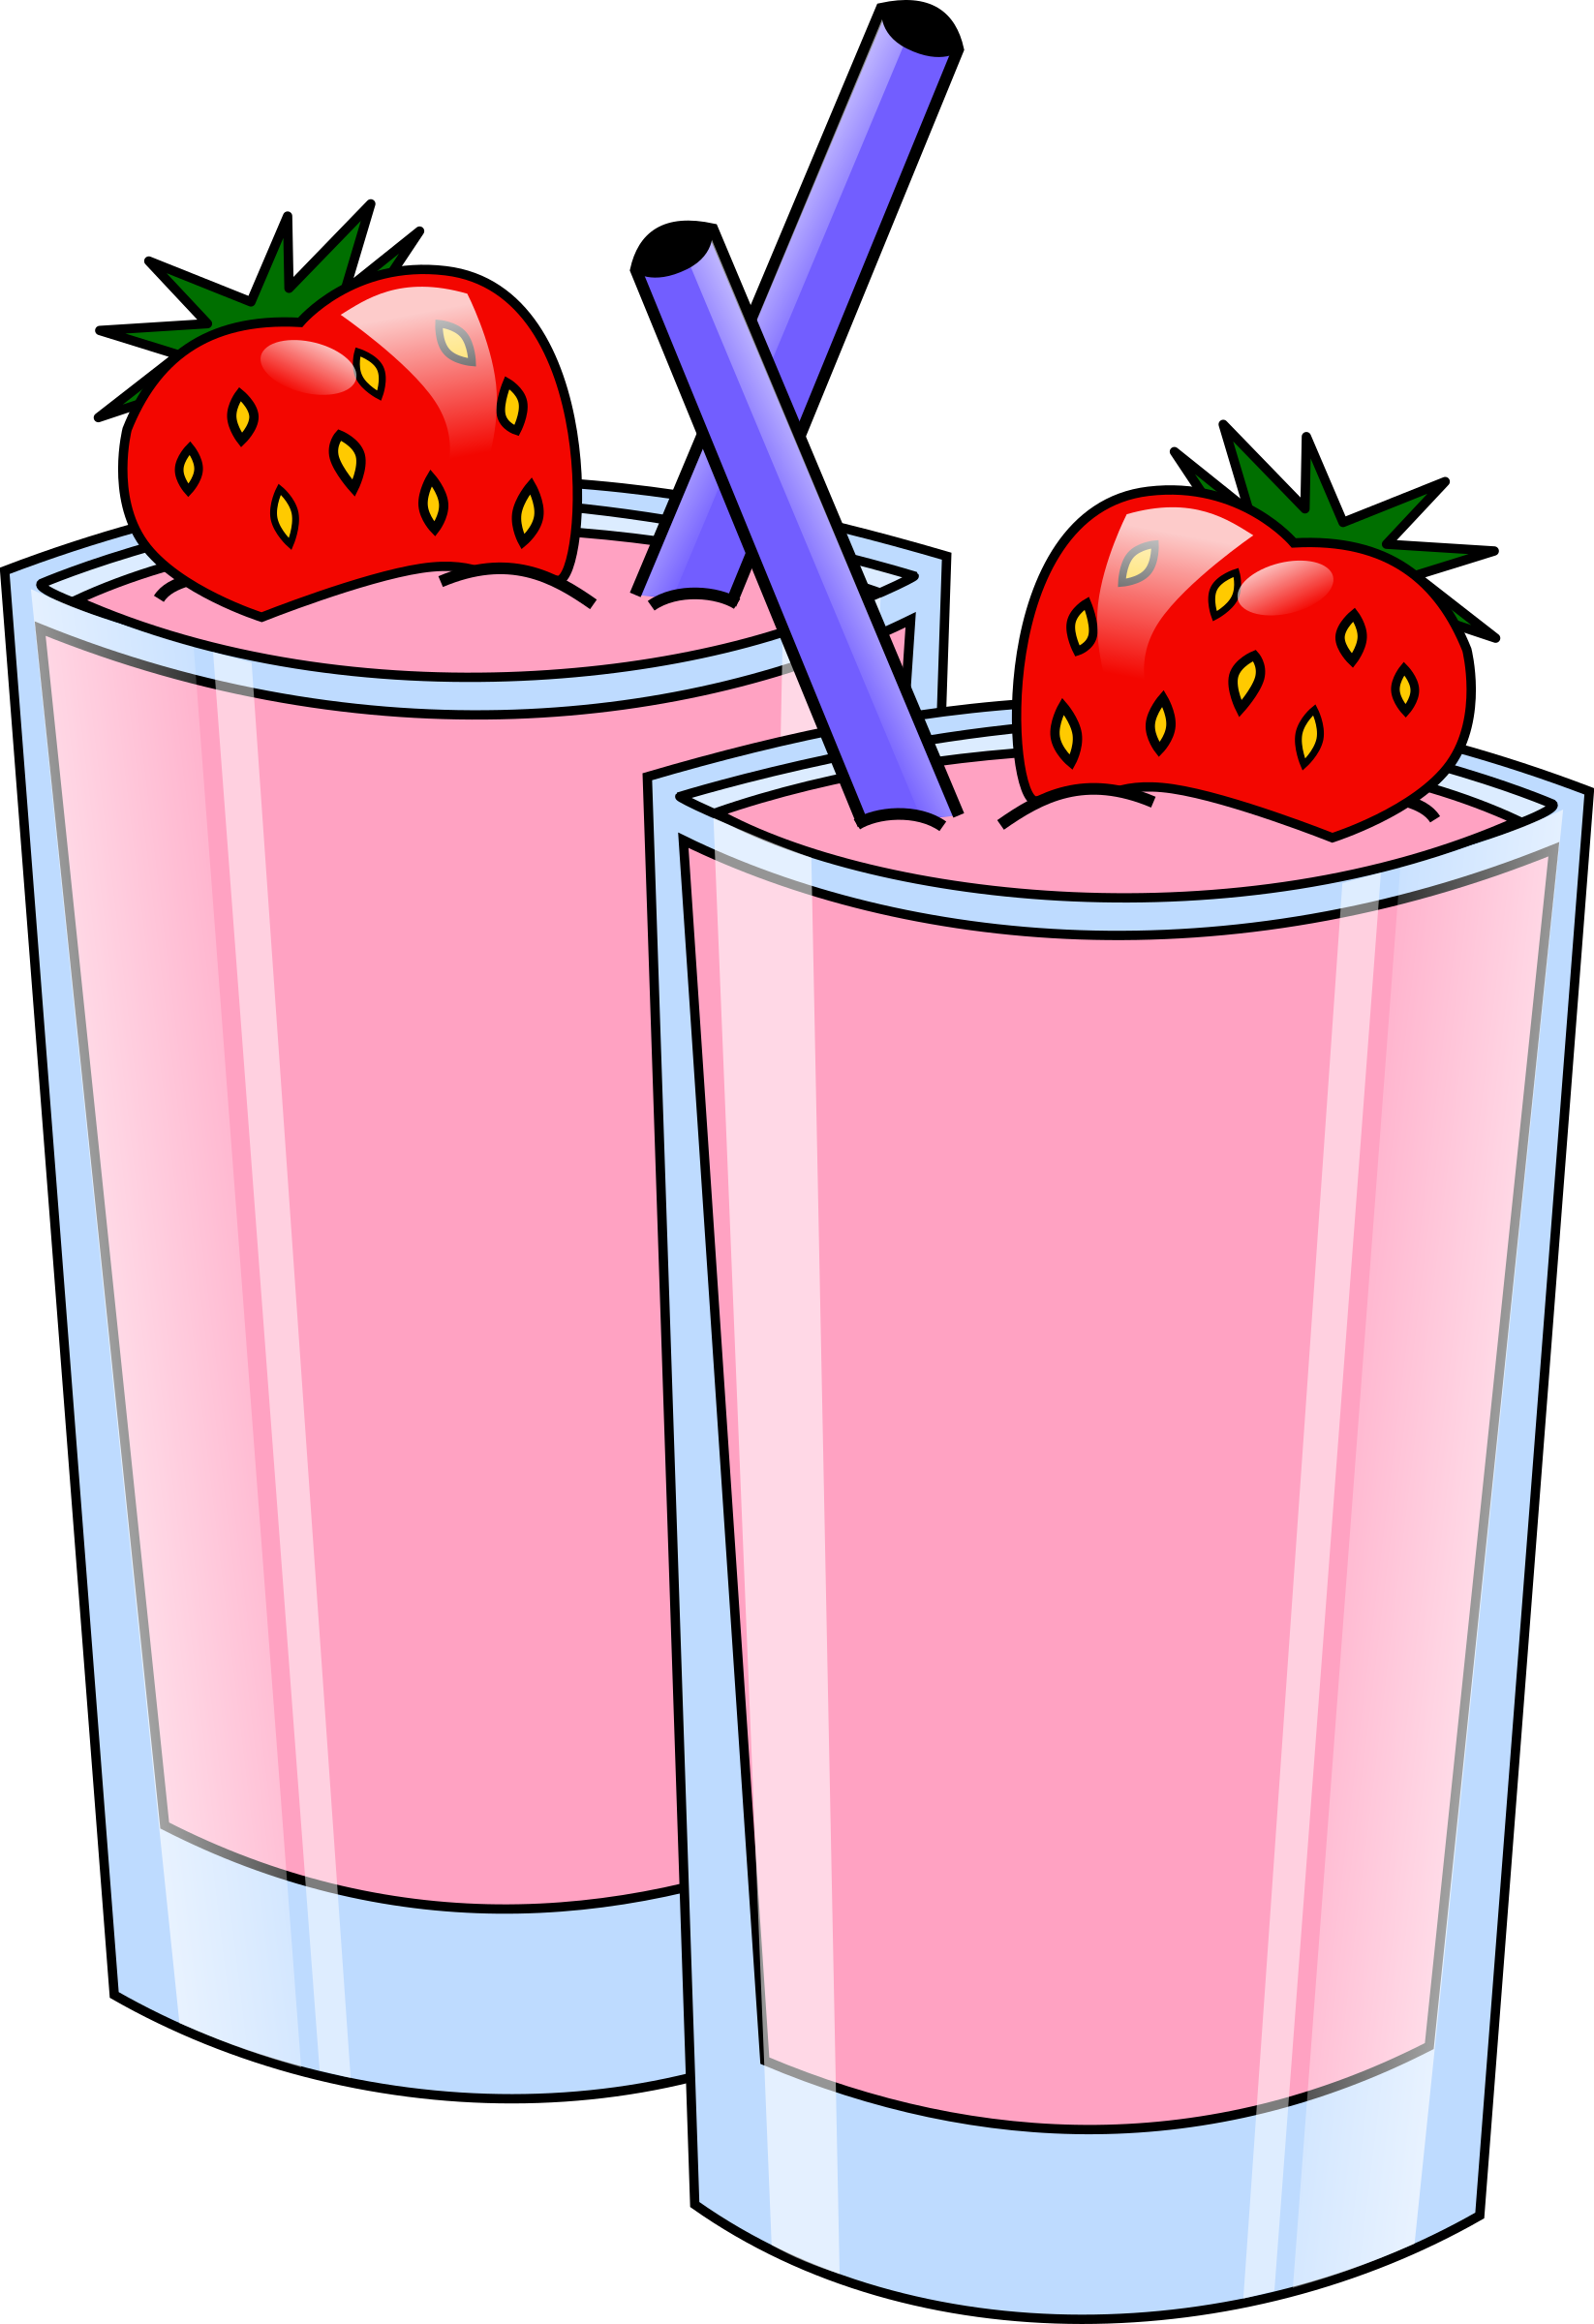 Smoothie transparent animated. Png images pluspng filesrdstrawberrysmoothiepng